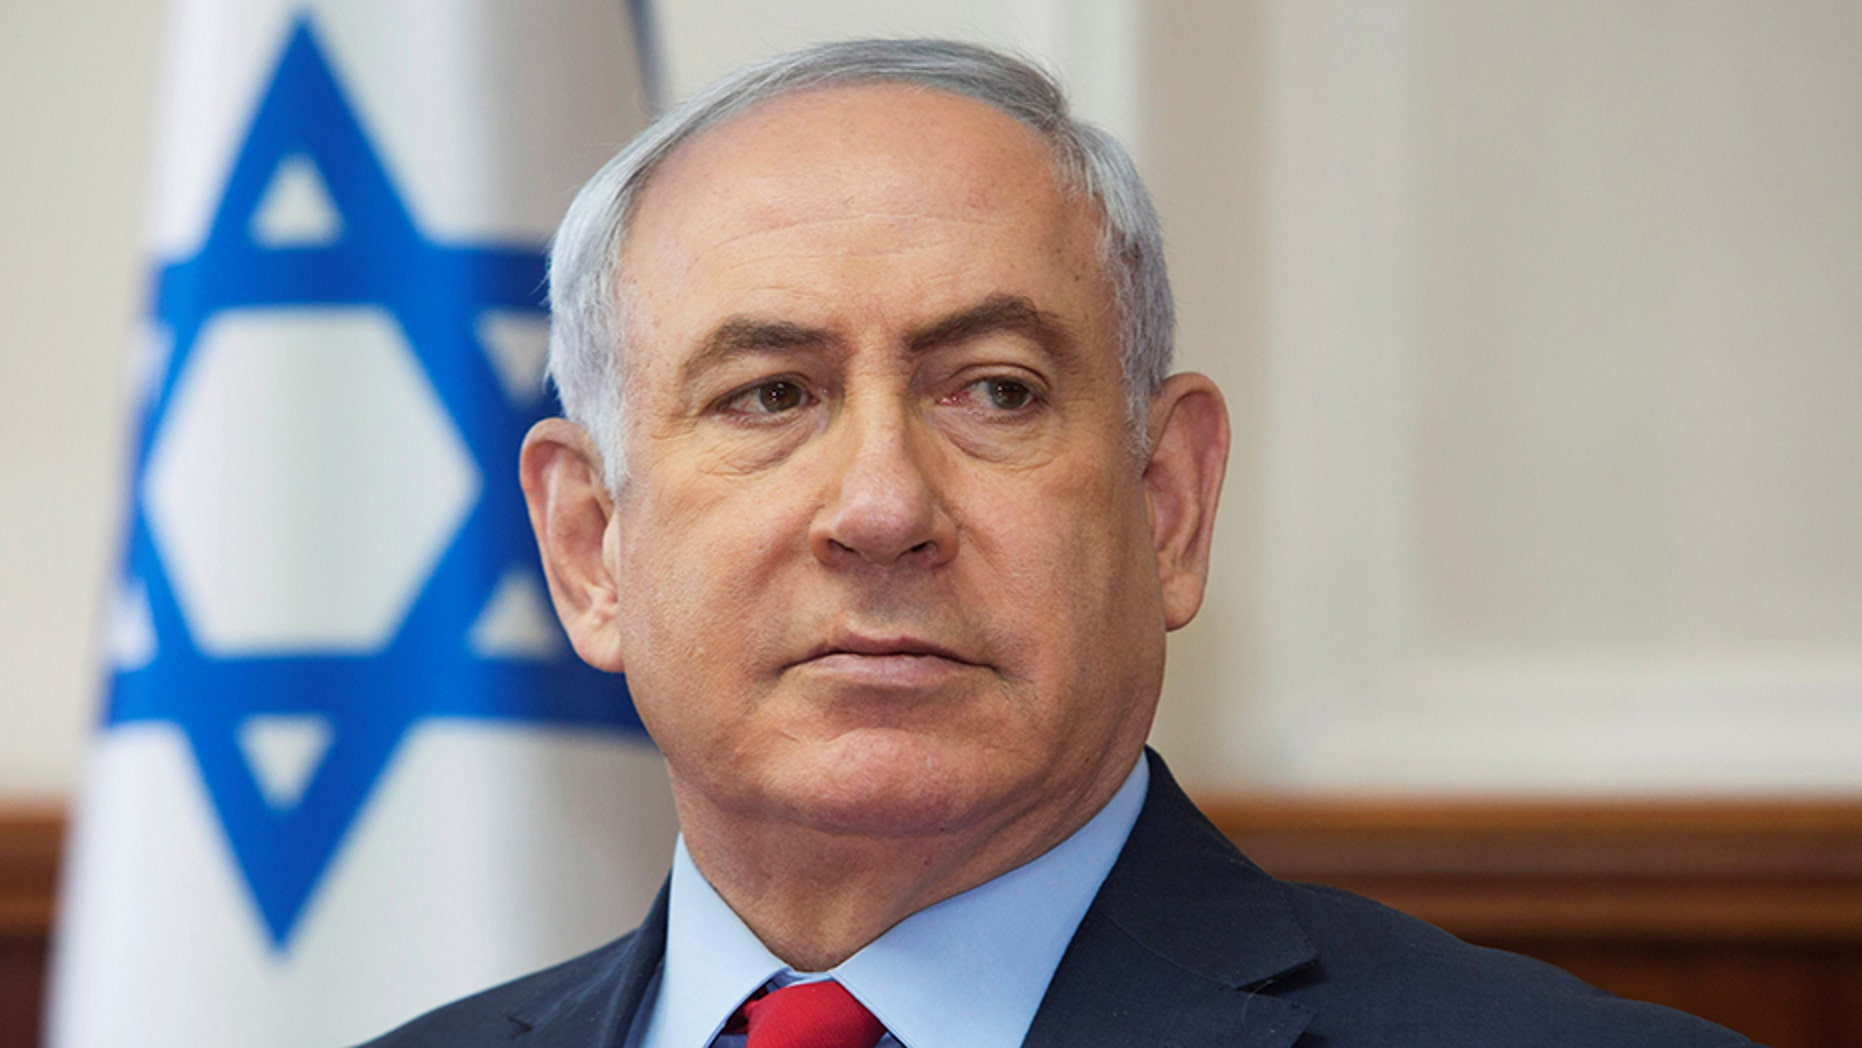 A German newspaper cut ties with a cartoonist after his depiction of Israeli Prime Minister Benjamin Netanyahu, seen here, drew outrage.